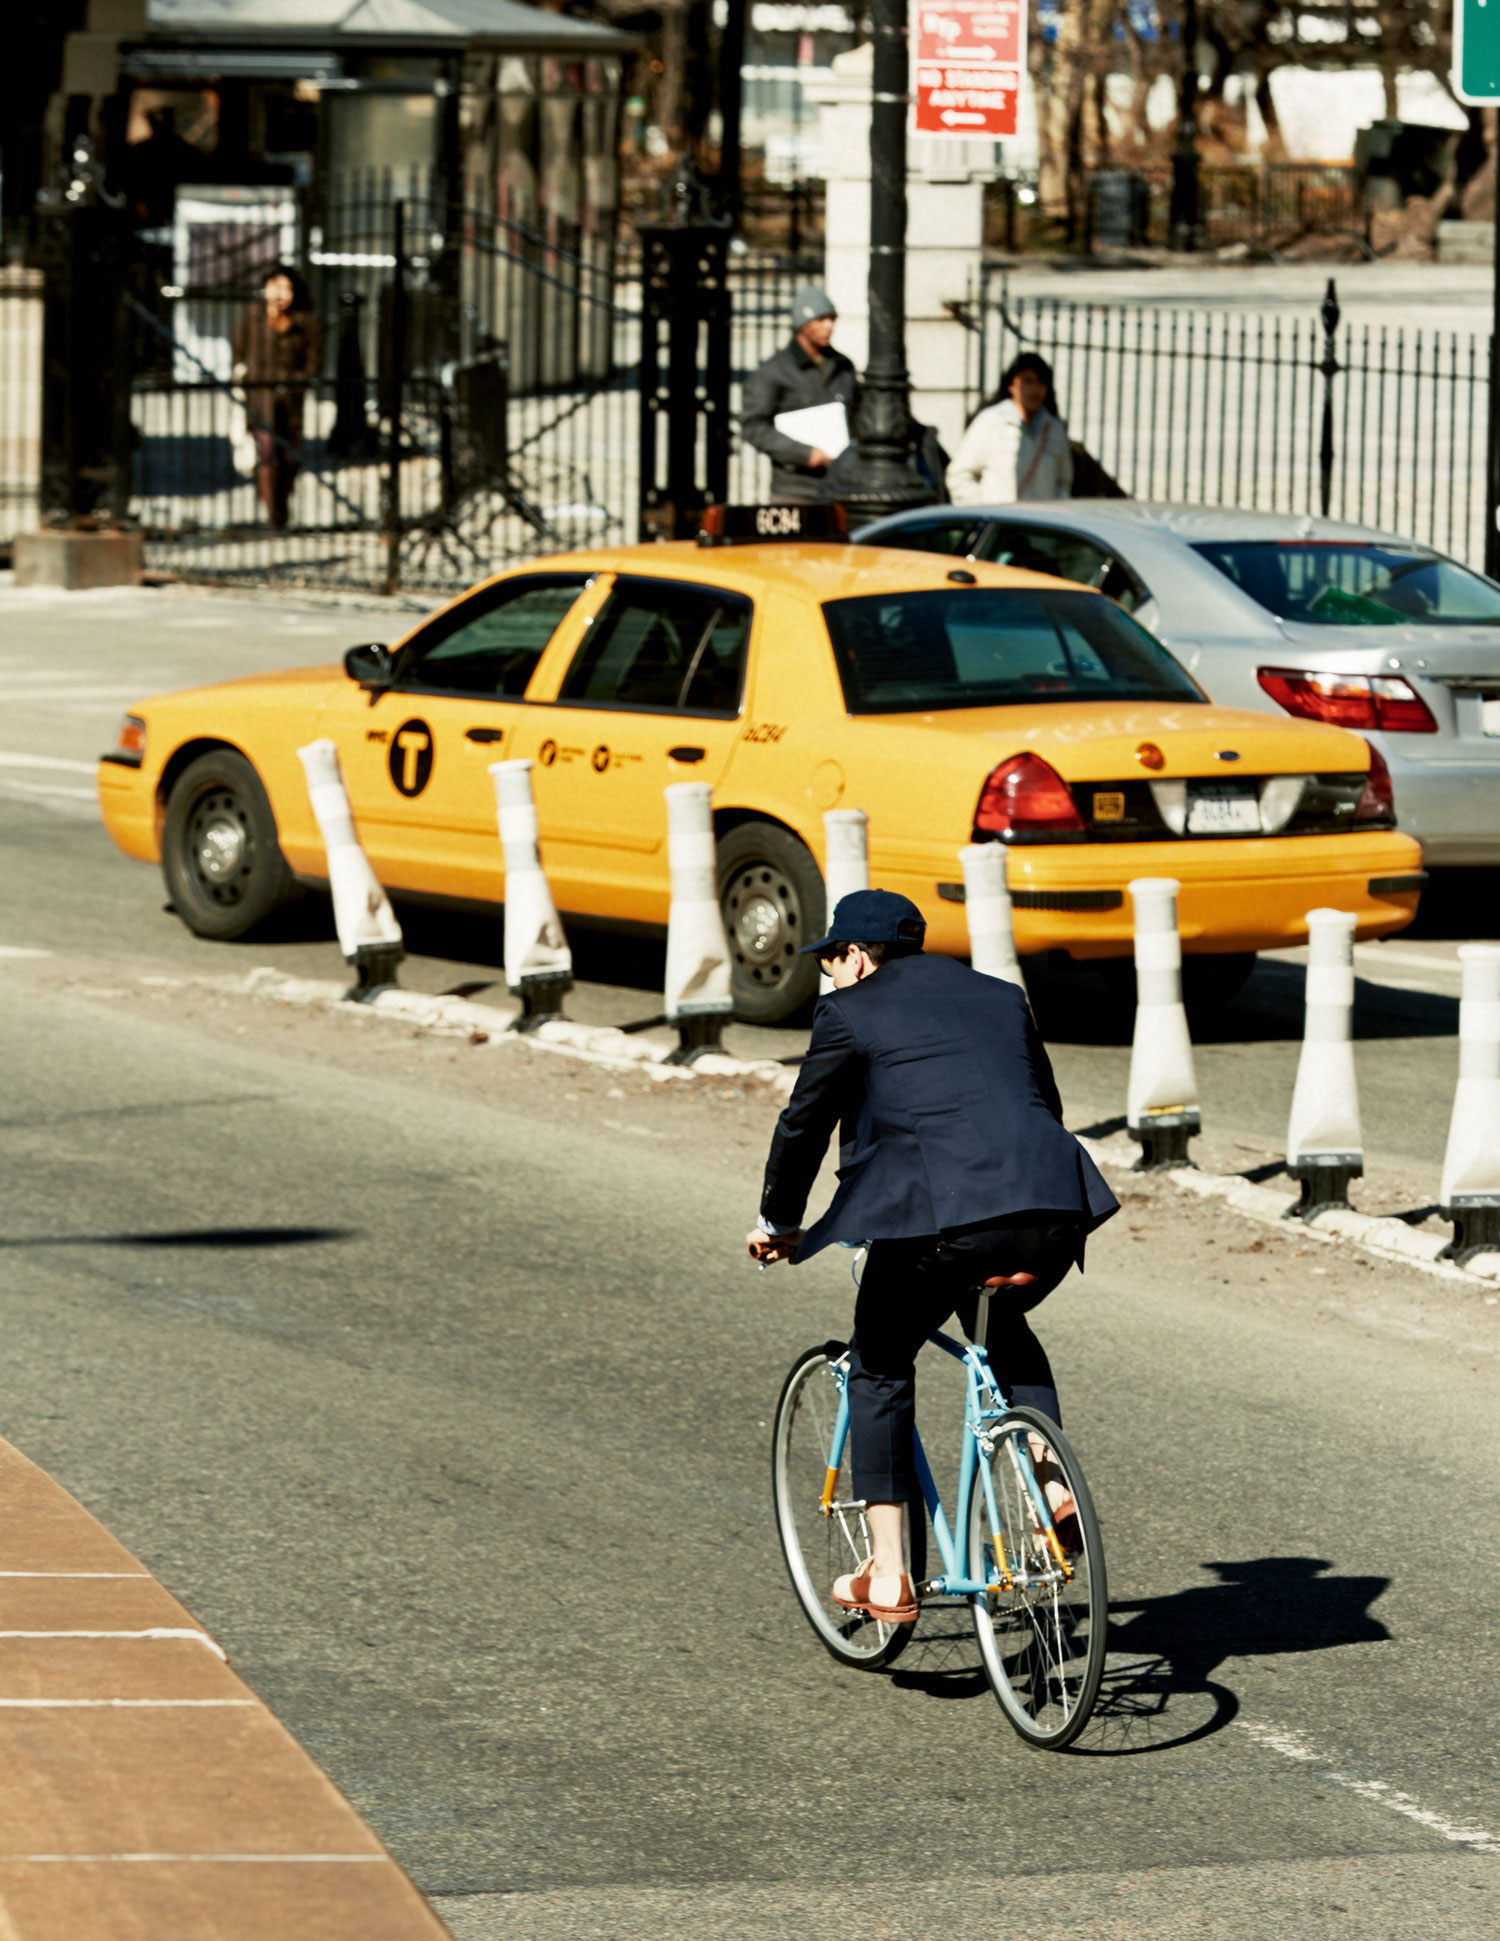 What Fred's doing here is actually illegal. Don't try this (without a helmet and low deductible health insurance).